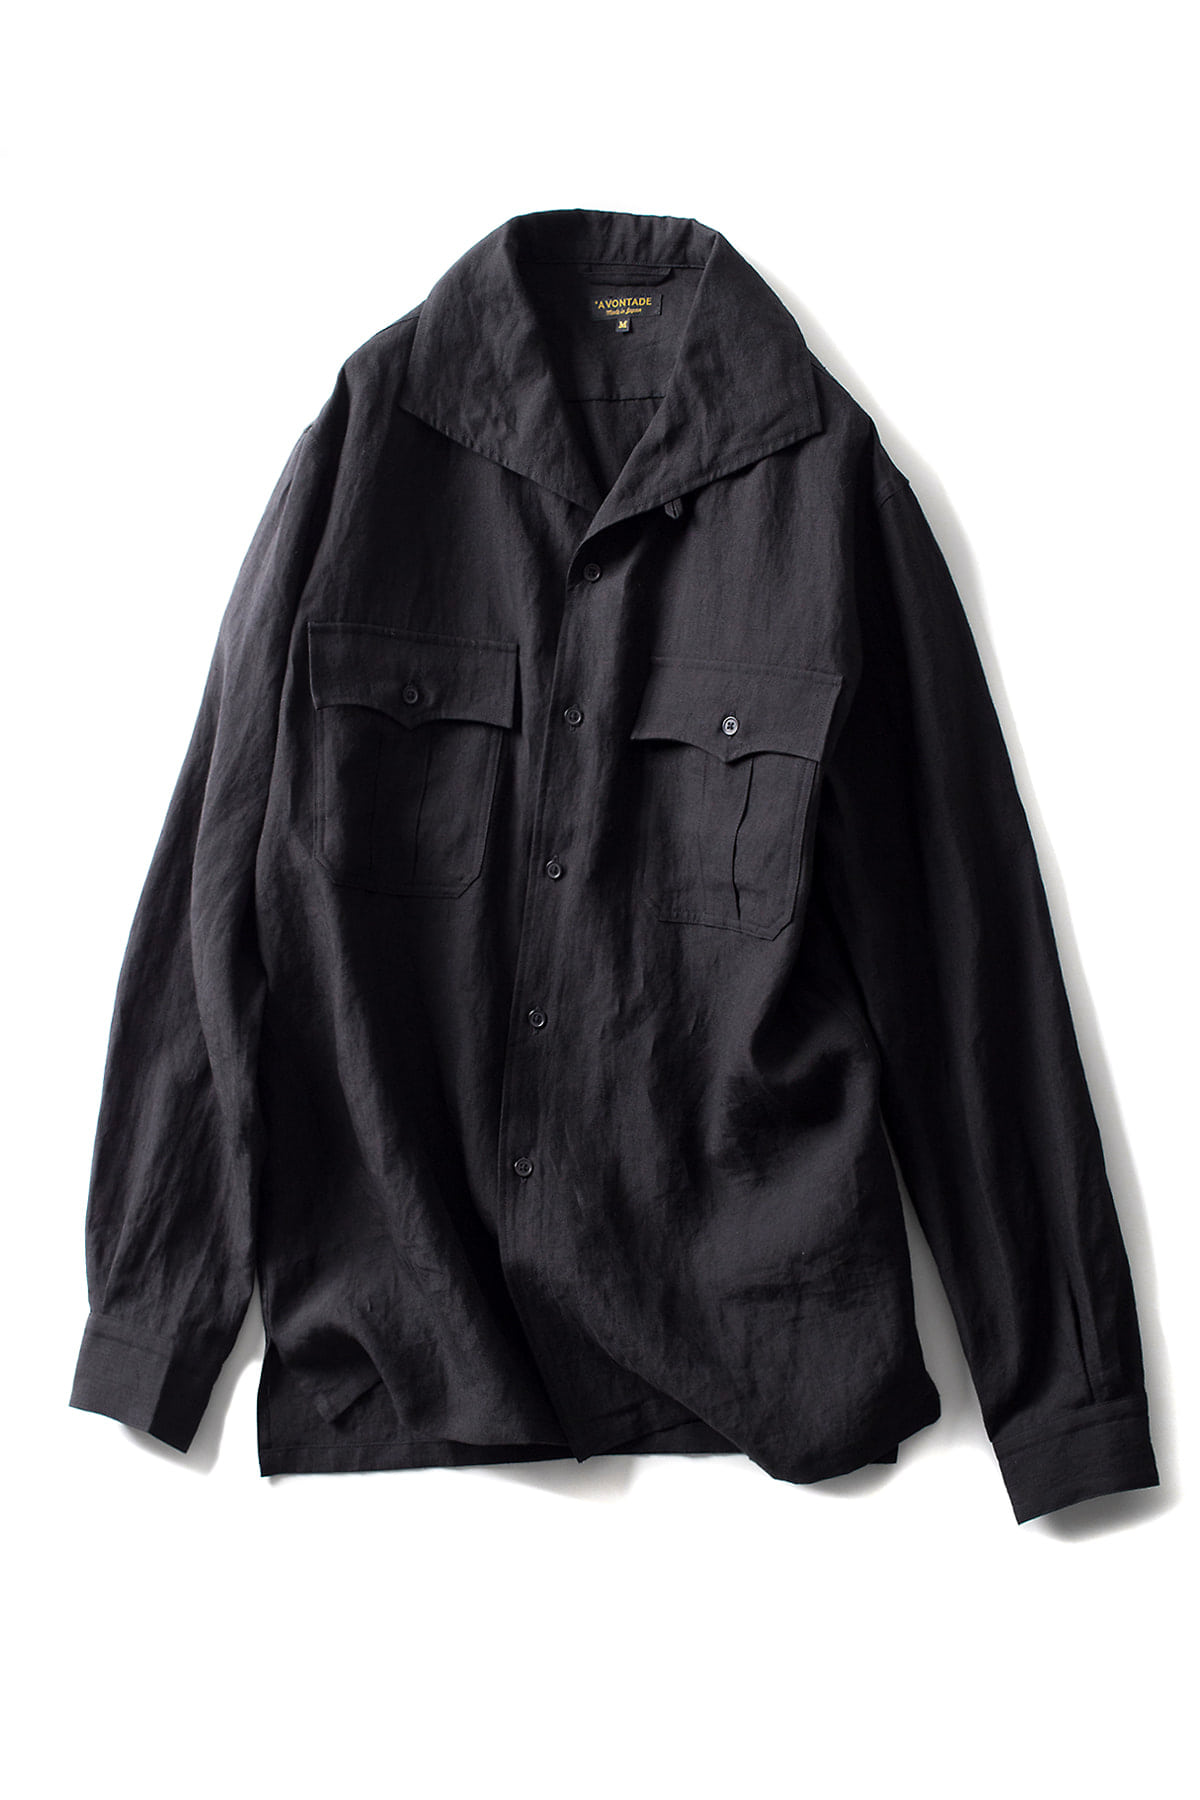 A vontade : Safari Shirts L/S (Black)